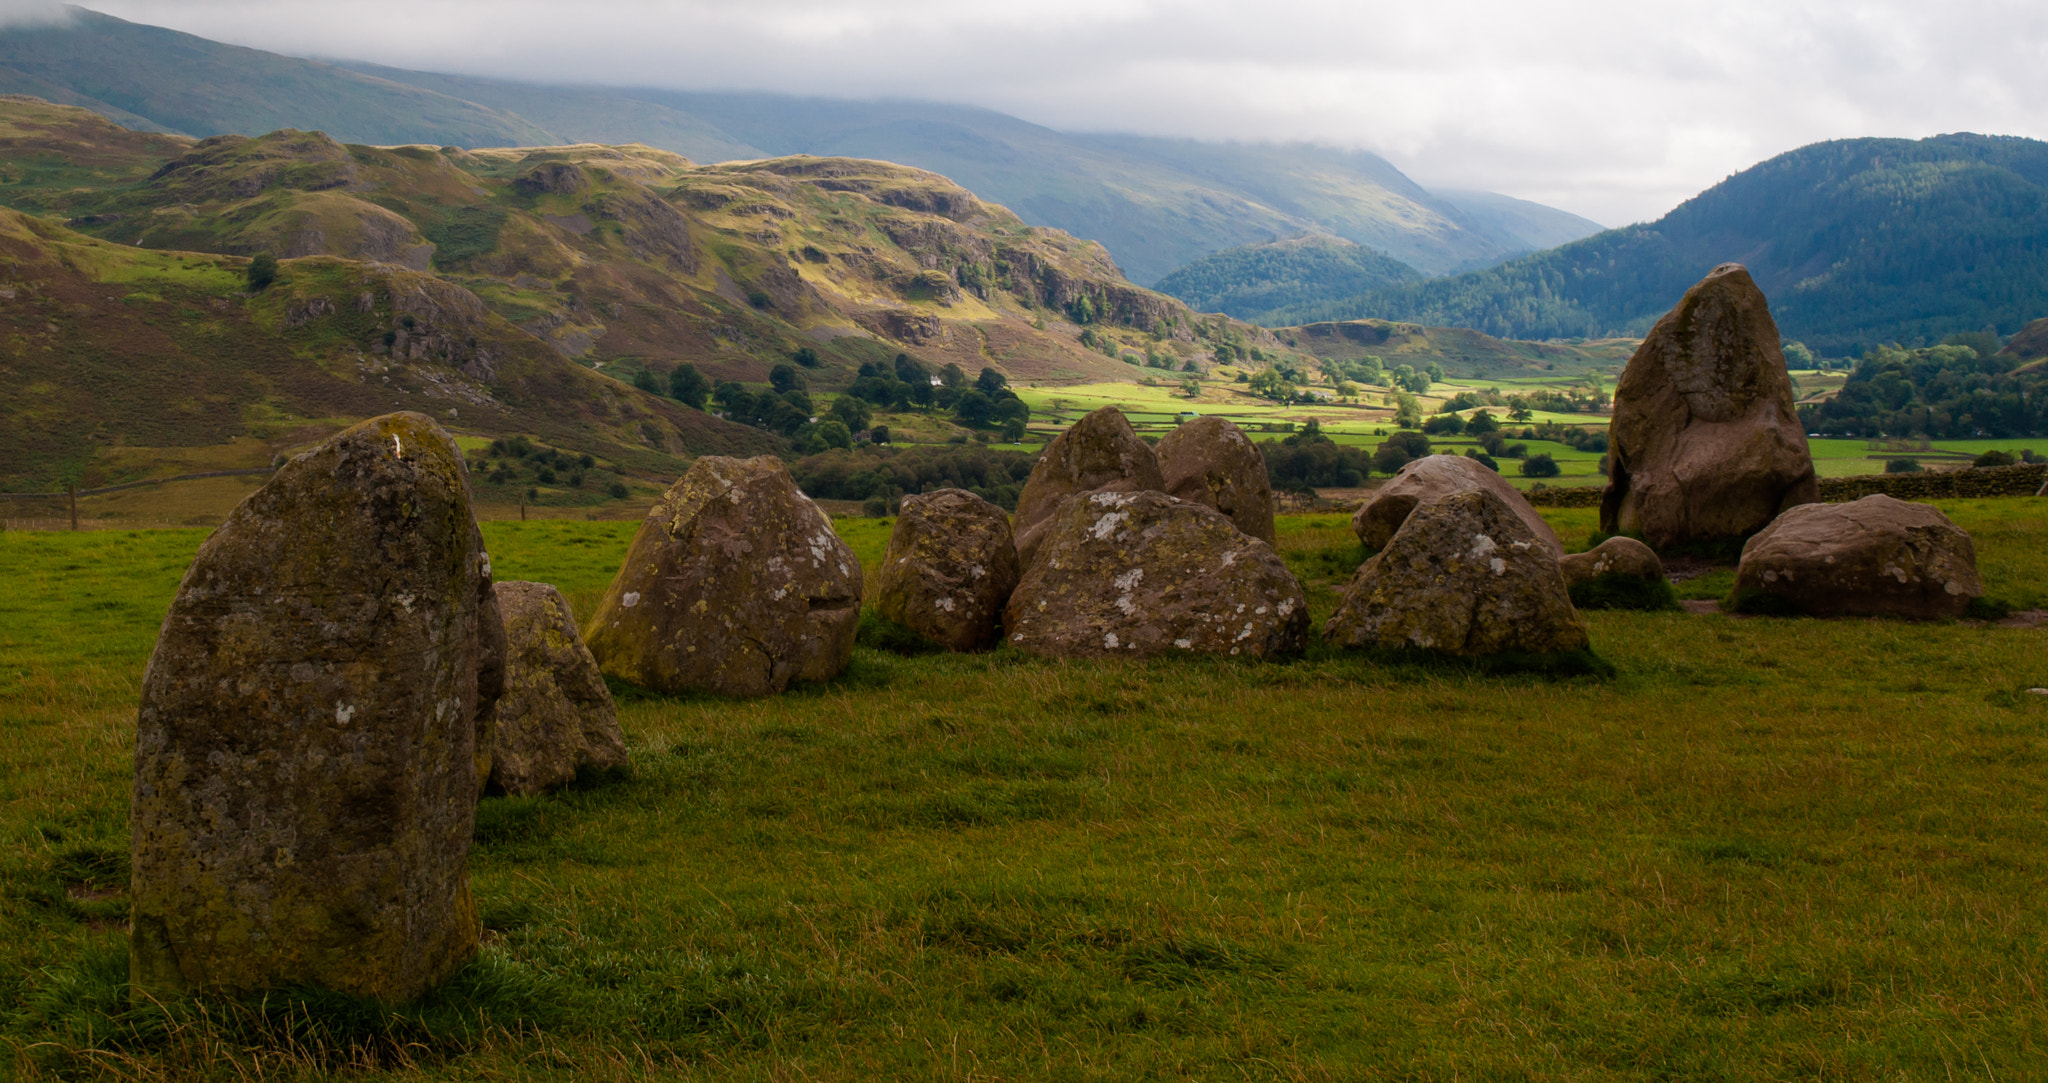 Photograph Castle Rigg Stone Circle by Phil Scarlett on 500px